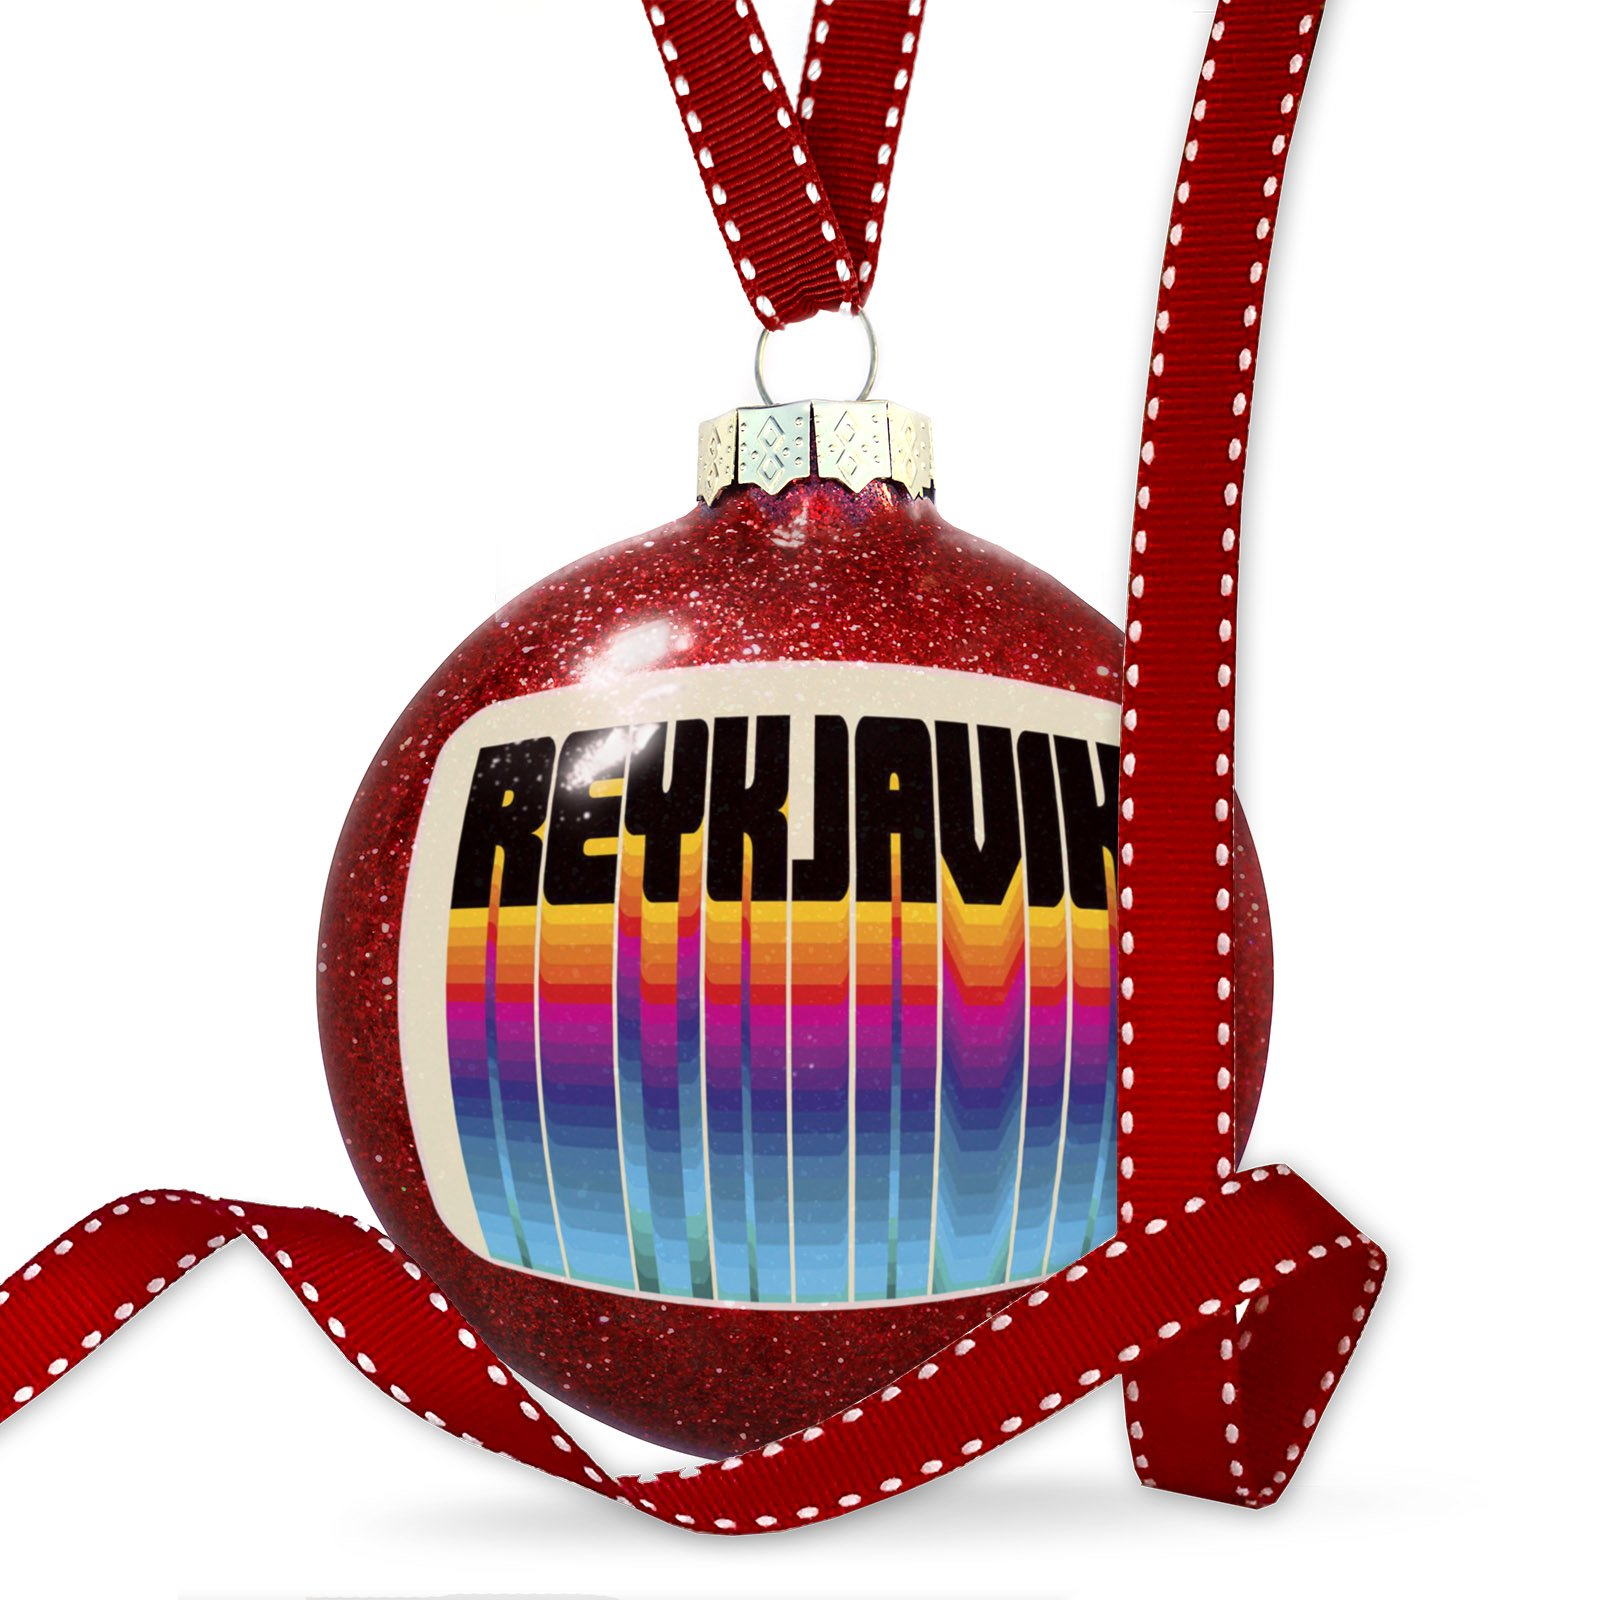 Christmas Decoration Retro Cites States Countries Reykjavik Ornament